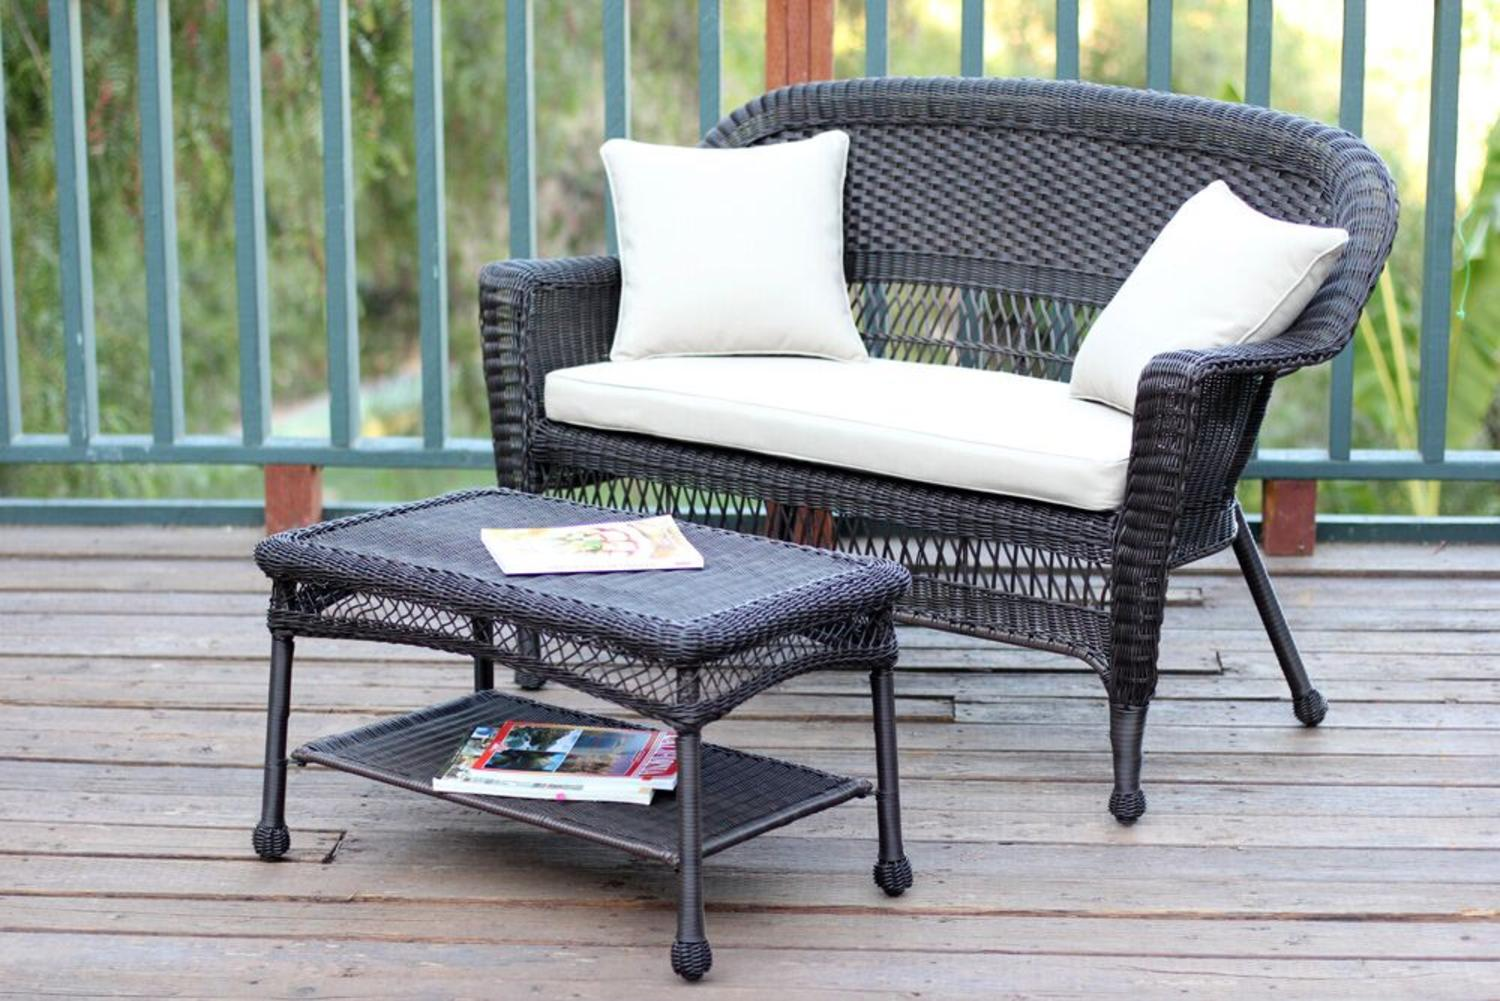 2-Piece Oswald Espresso Resin Wicker Patio Loveseat & Coffee Table Set Tan Cushion by CC Outdoor Living